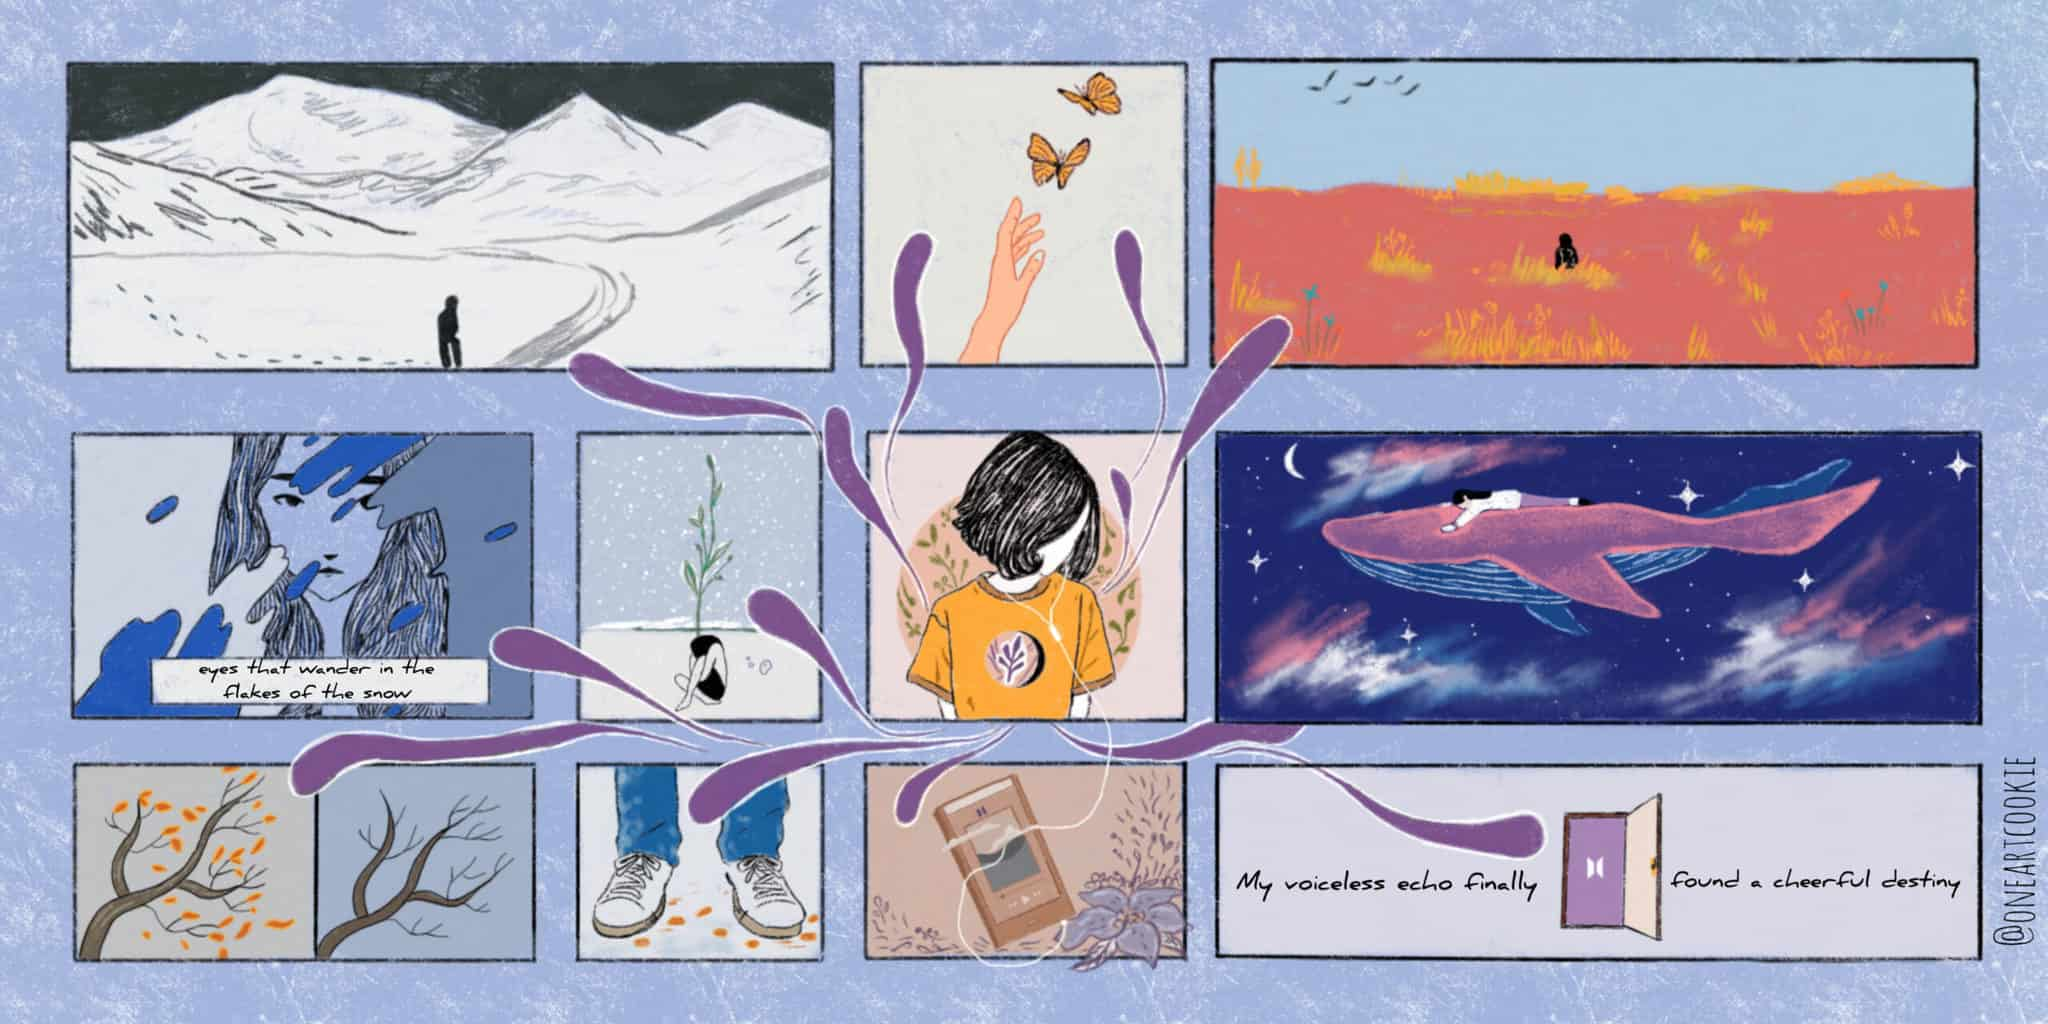 A collage of images ranging from a lonely figure wandering in the snow and a girl resting on the back of a purple whale